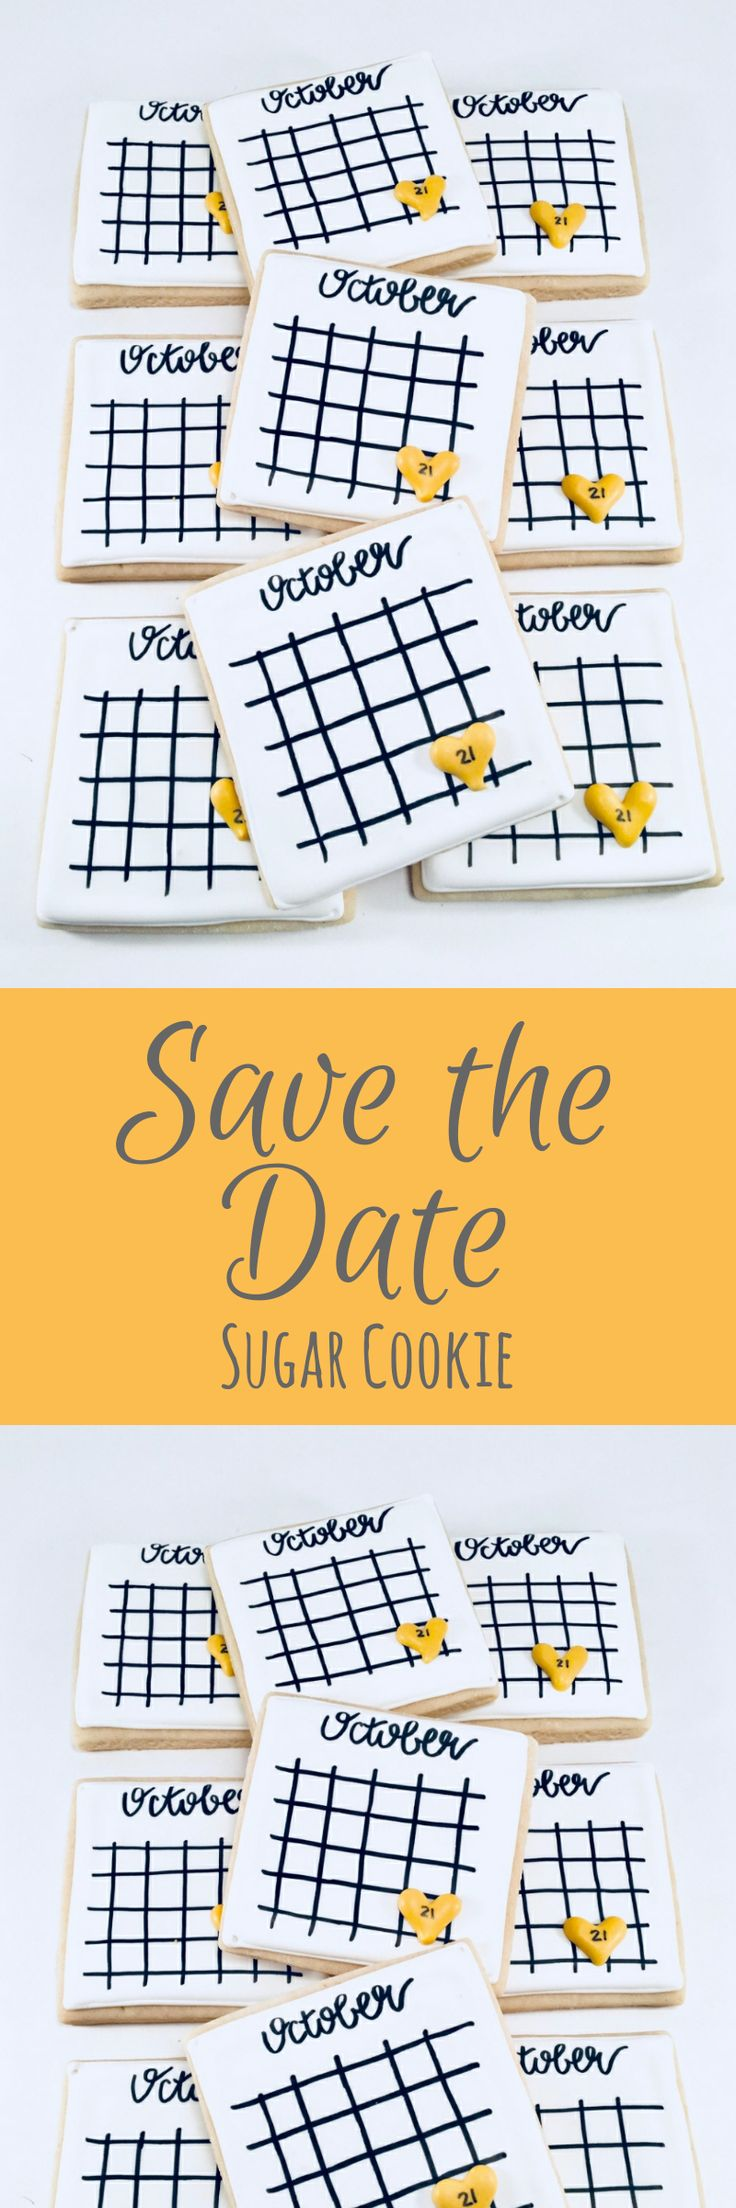 Save the Date - 1 Dozen (12) Decorated Sugar Cookies #affiliate